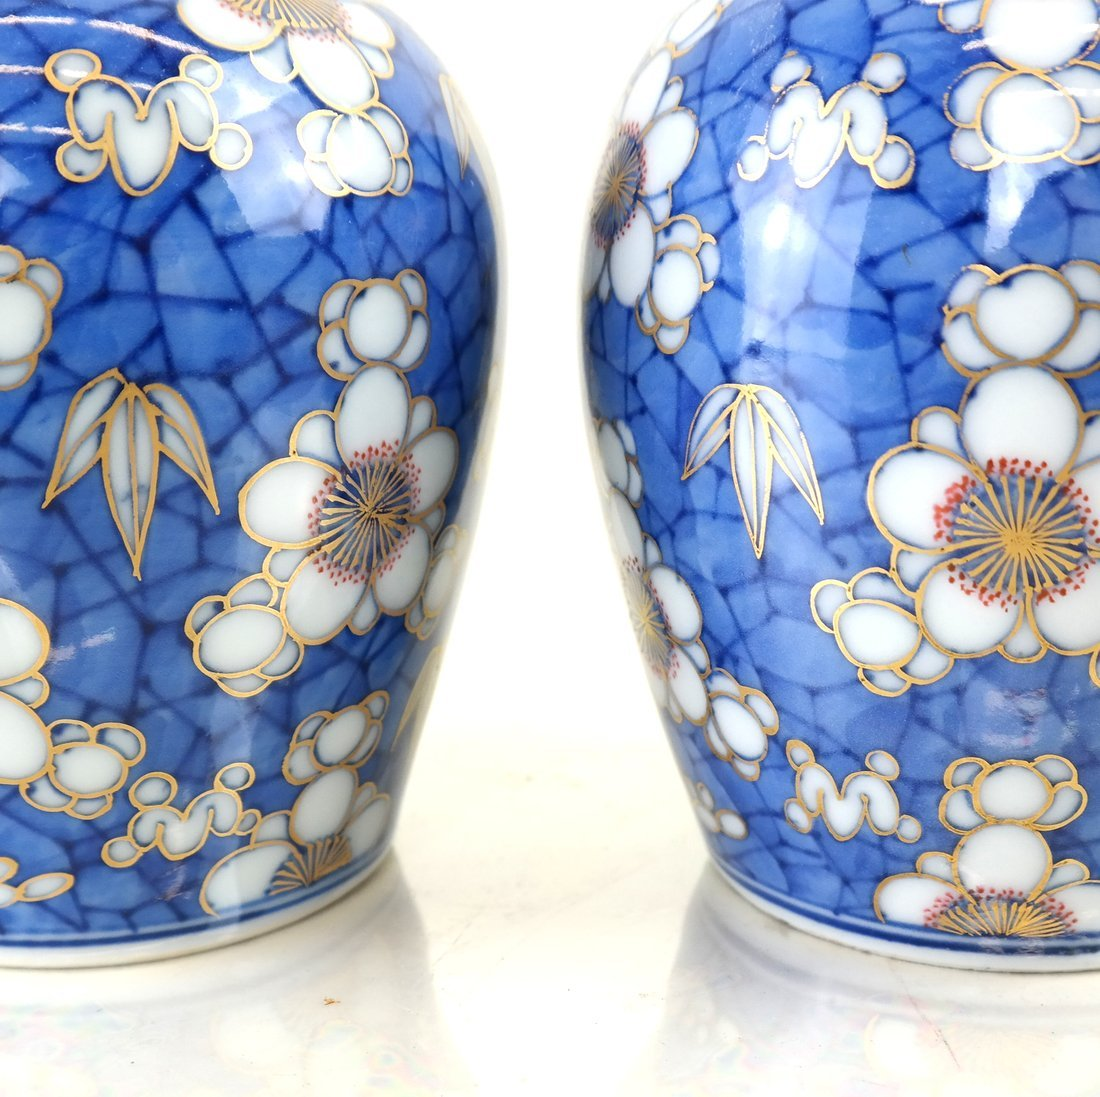 Pair of Chinese Export Porcelain Jars - 3